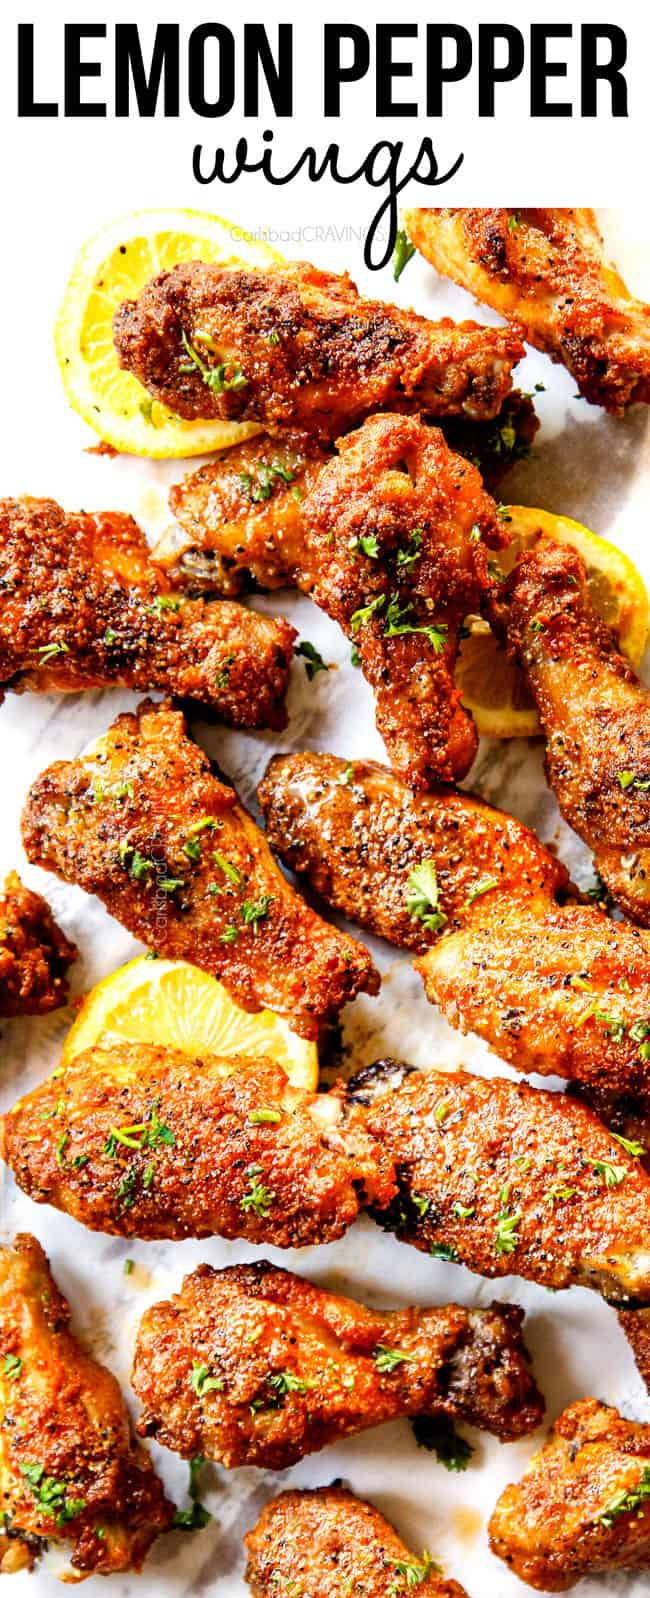 top view of lemon pepper wings serving with lemon pepper wings sauce